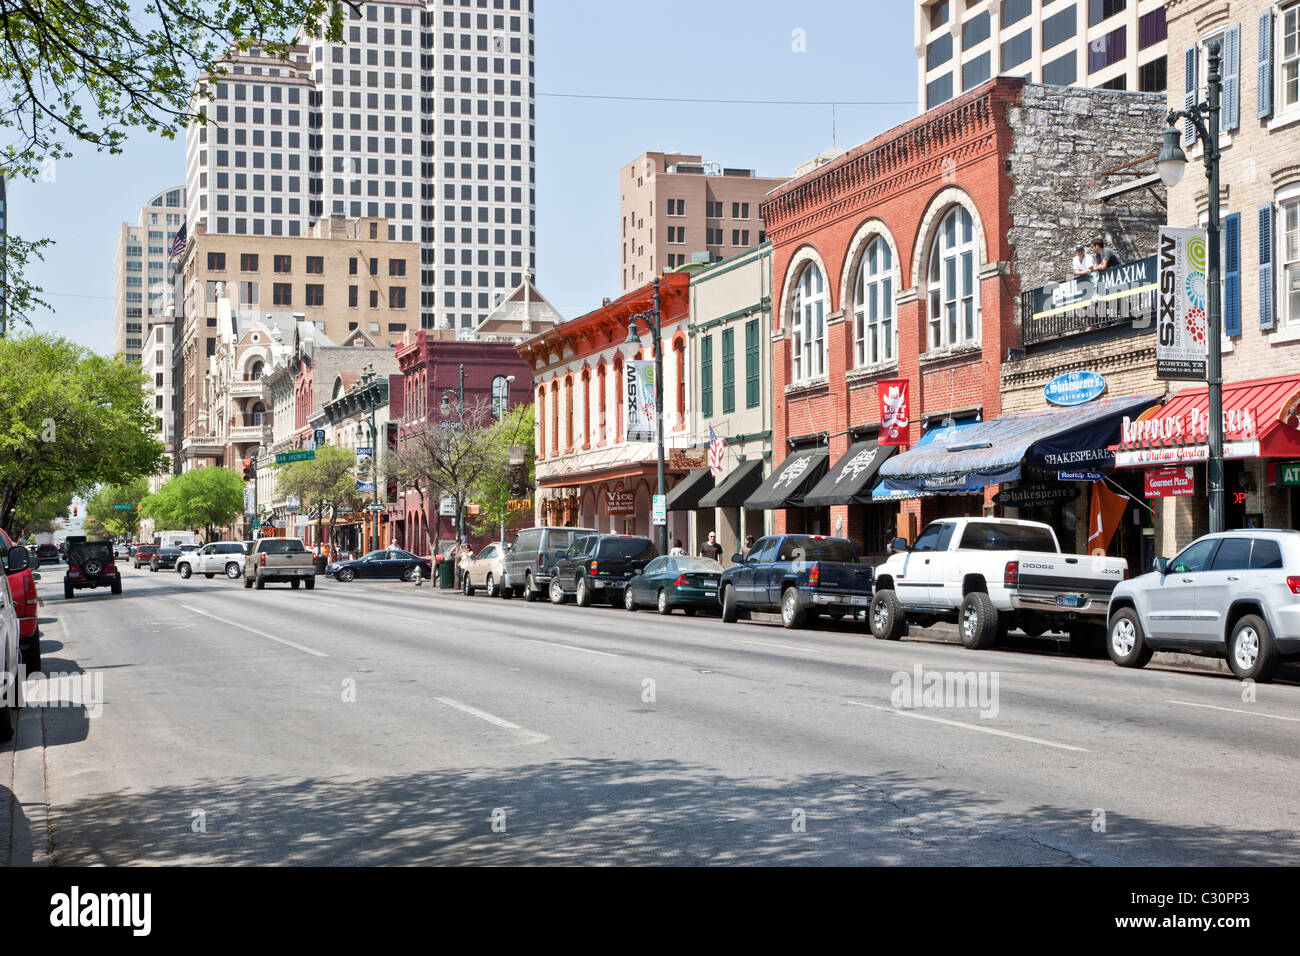 6th Street, 'Entertainment District' - Stock Image